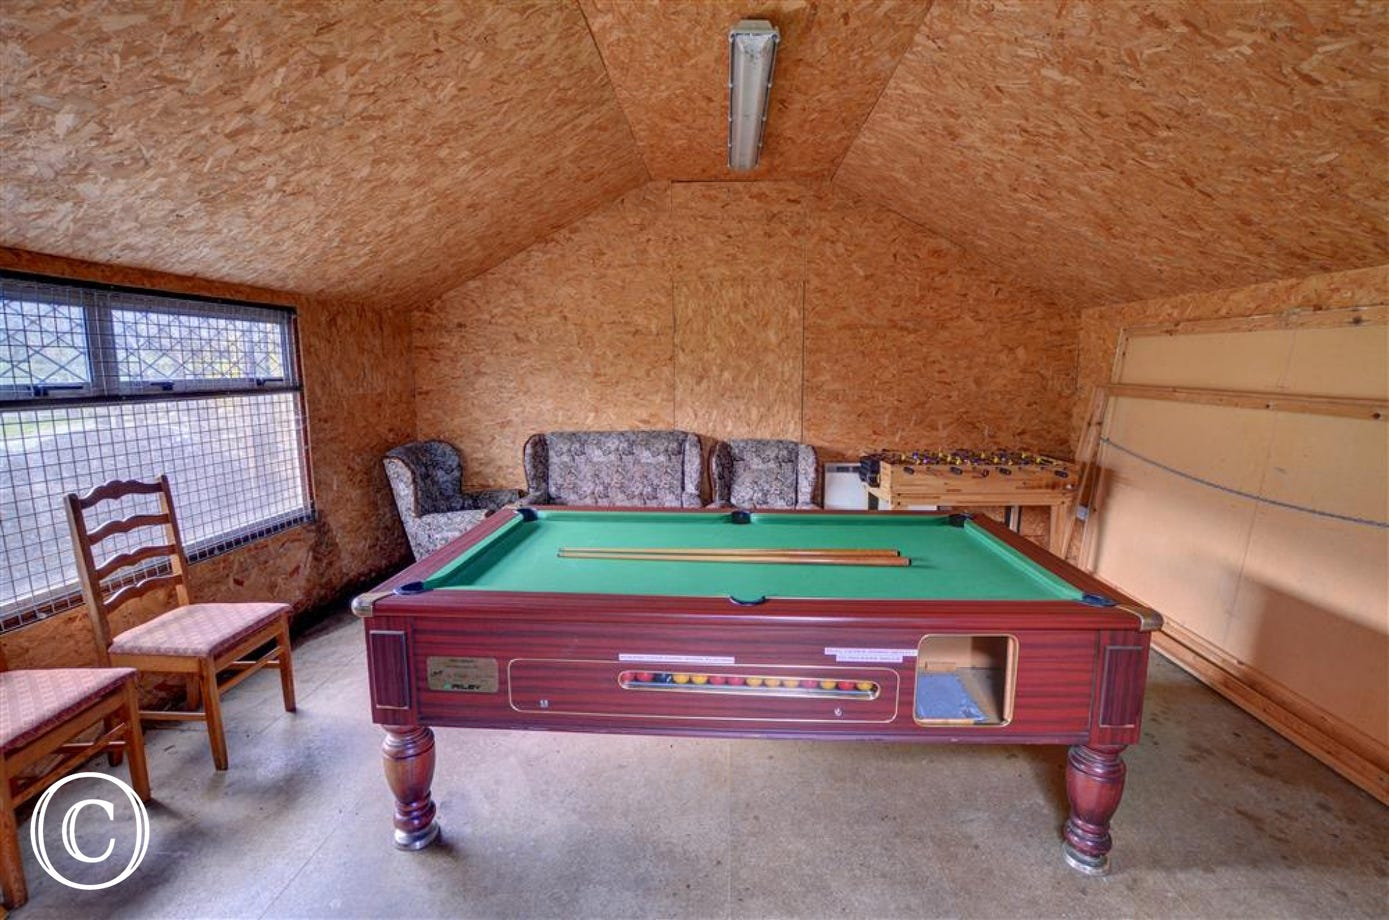 The games room with snooker table etc is in a detached building in Barn Cottage's garden